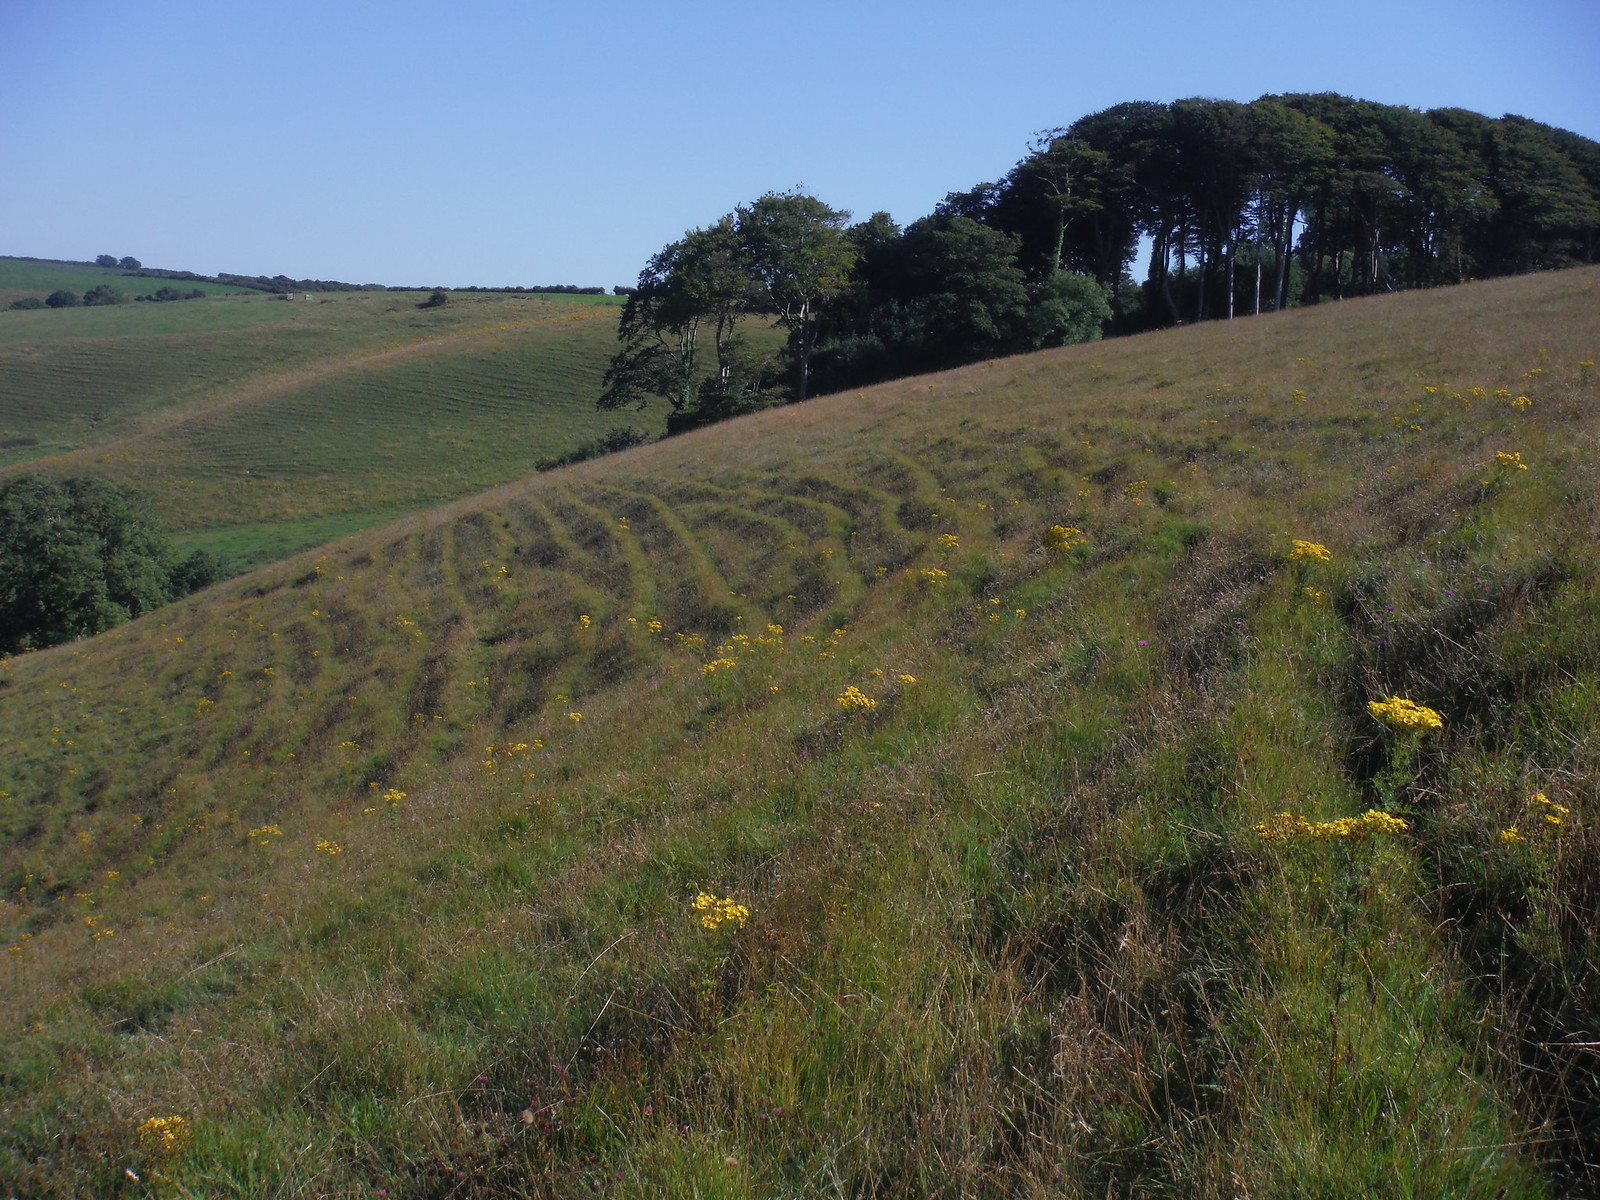 Tenants Hill Ascent SWC Walk 275 Dorchester South Circular or to Portesham (Extension)